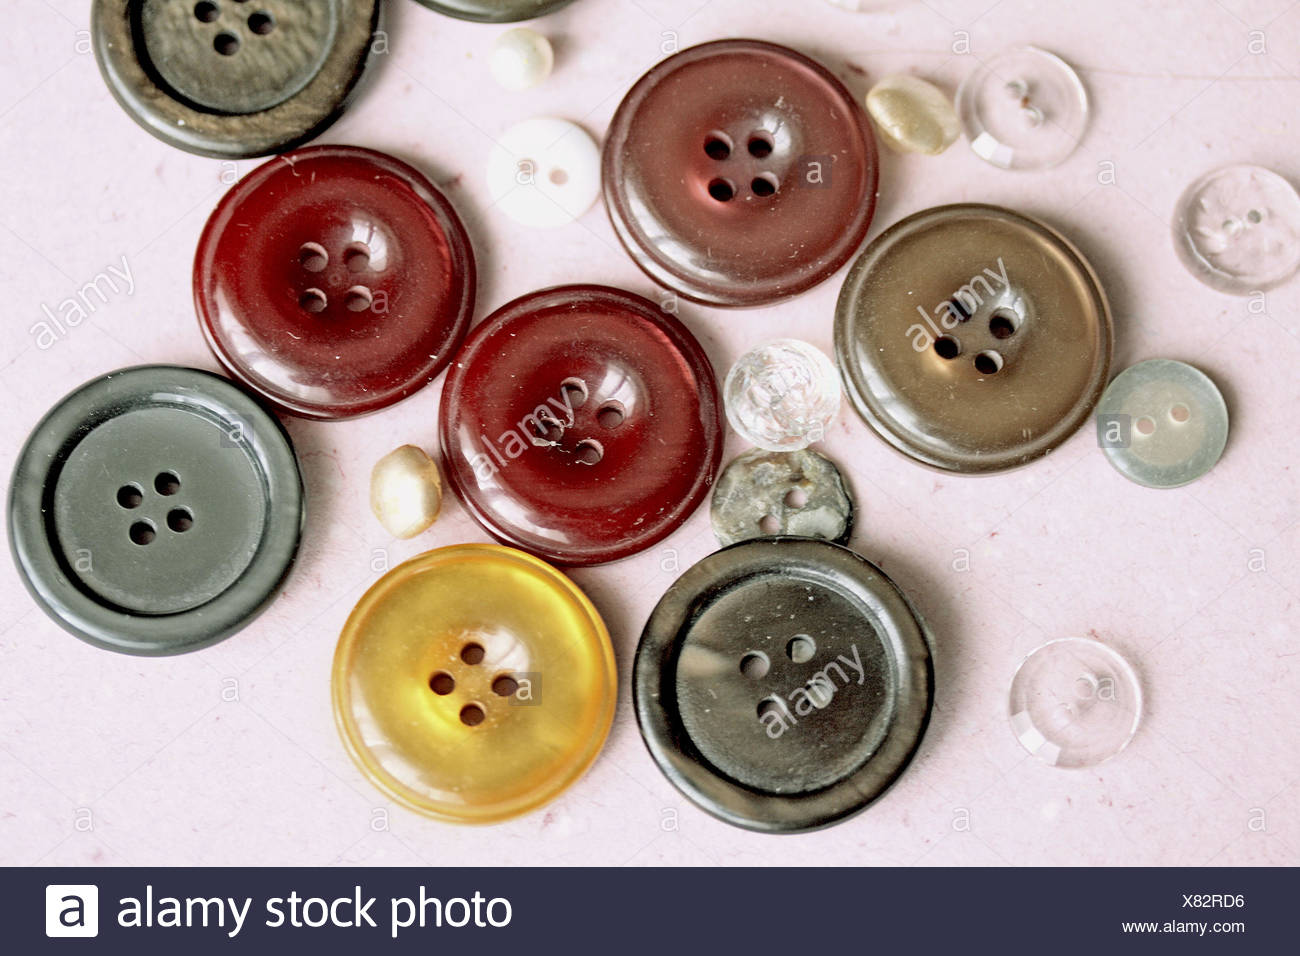 Red Coat With Large Buttons Stock Photos & Red Coat With